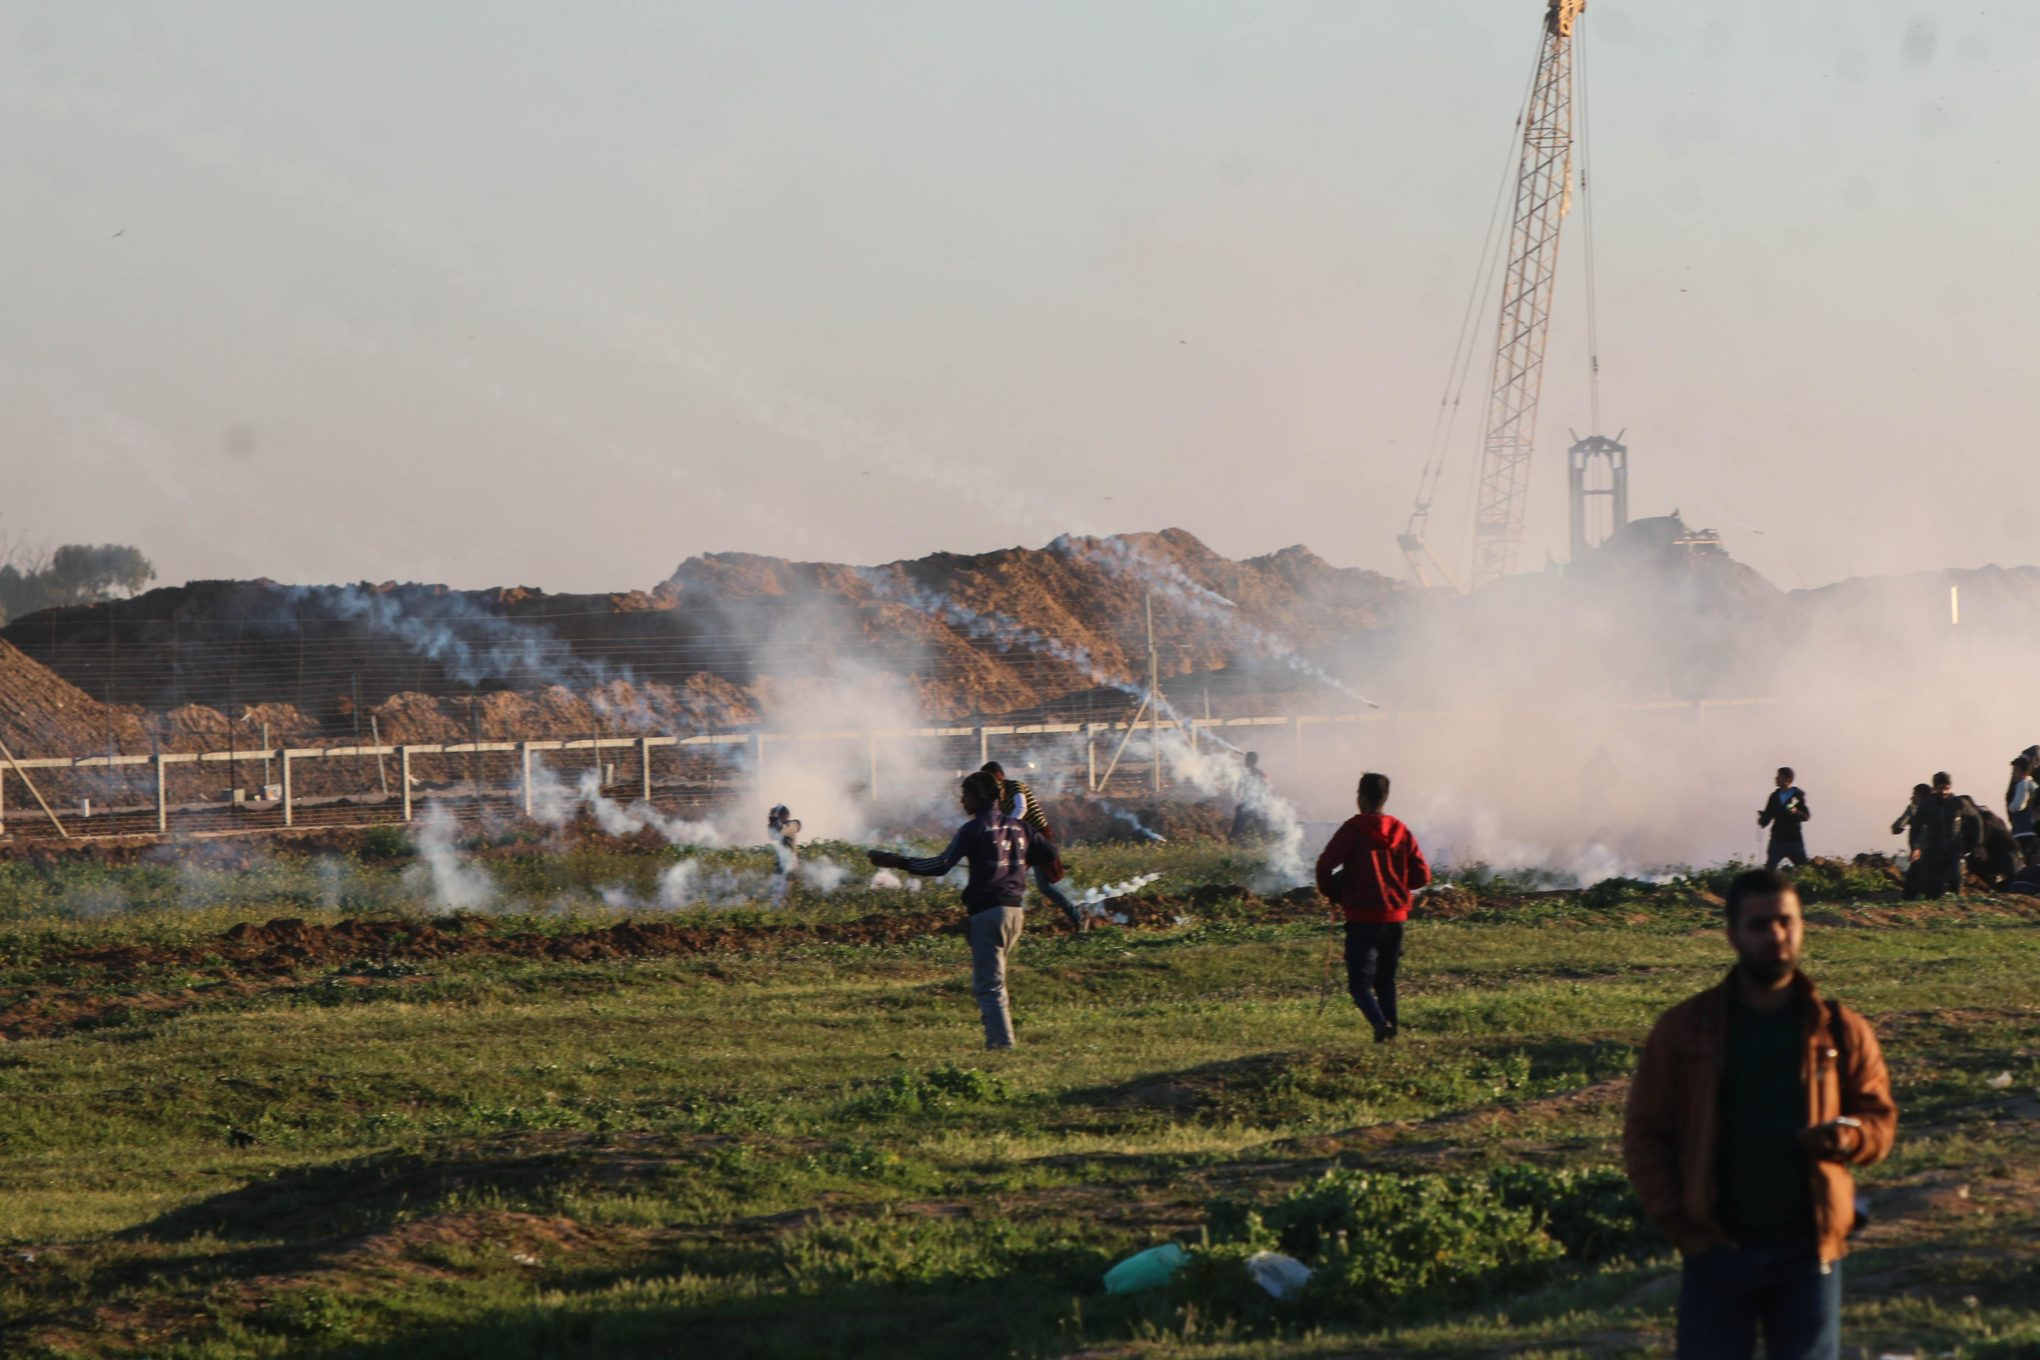 Gaza boy dies 3 months after being shot in head with teargas canister - Mondoweiss